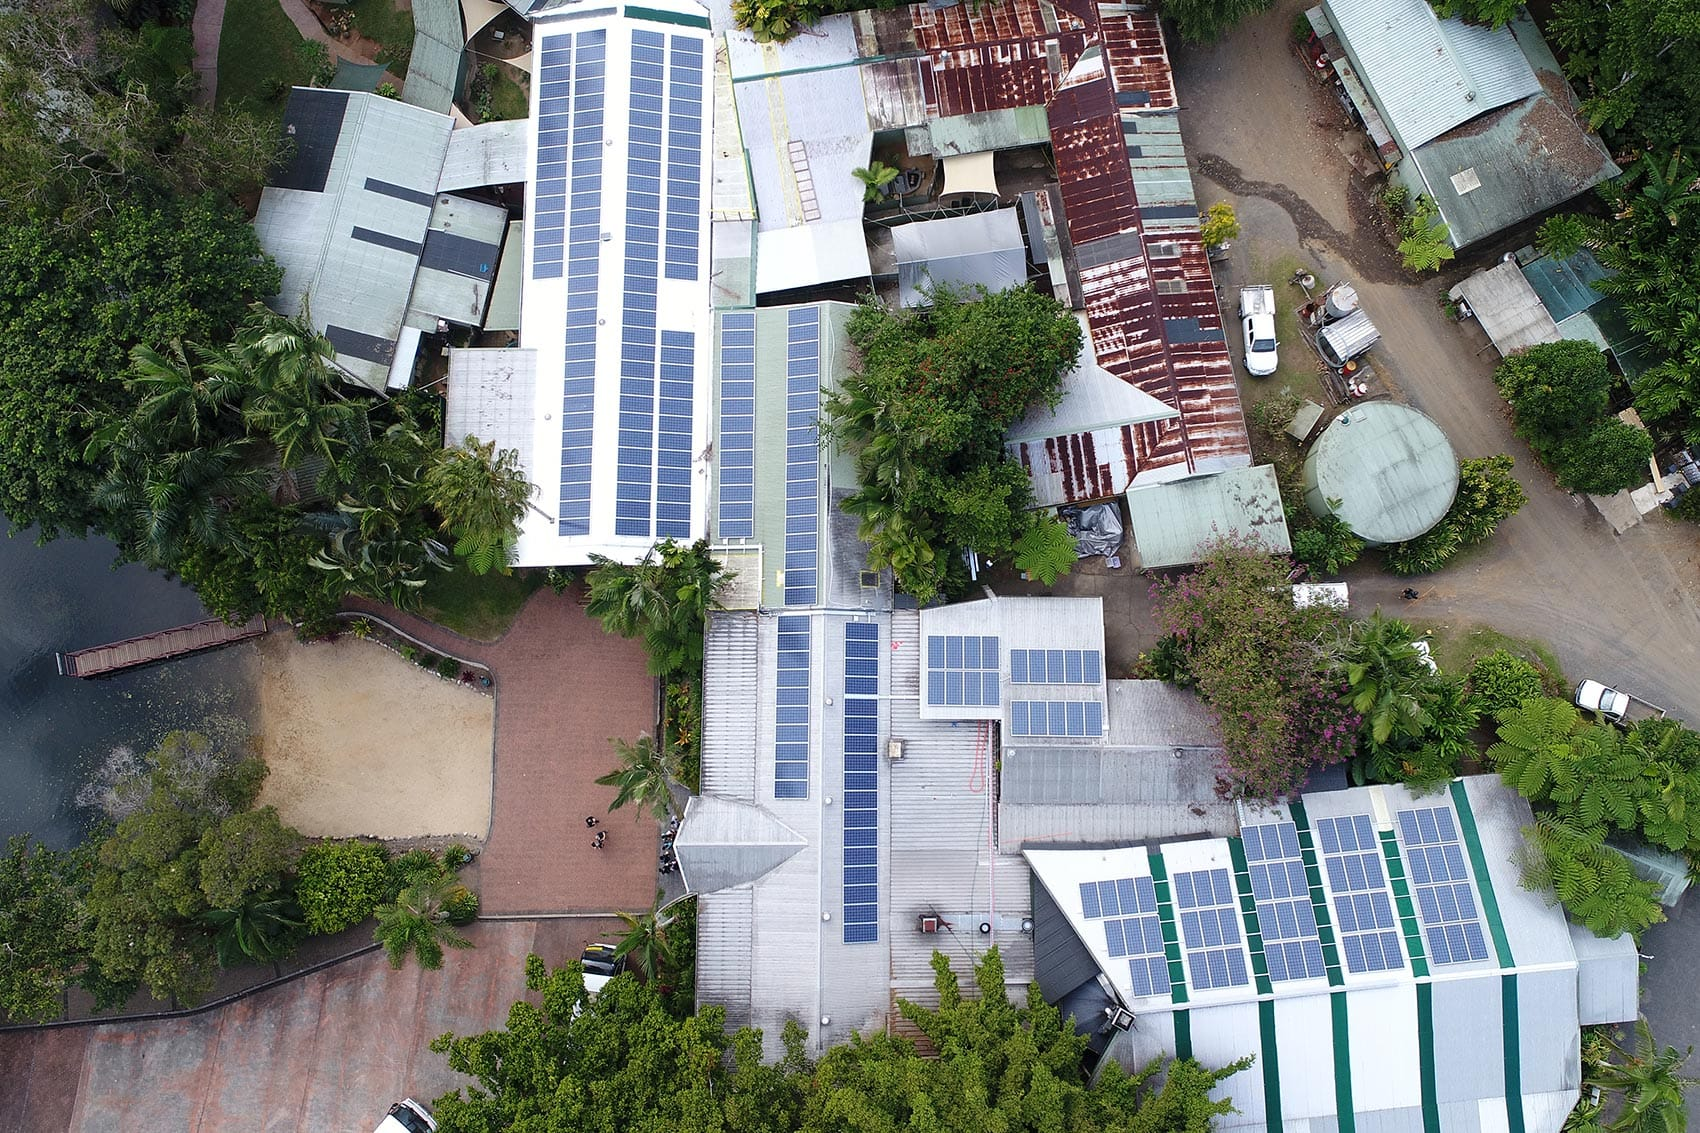 rows of solar panels on roofs